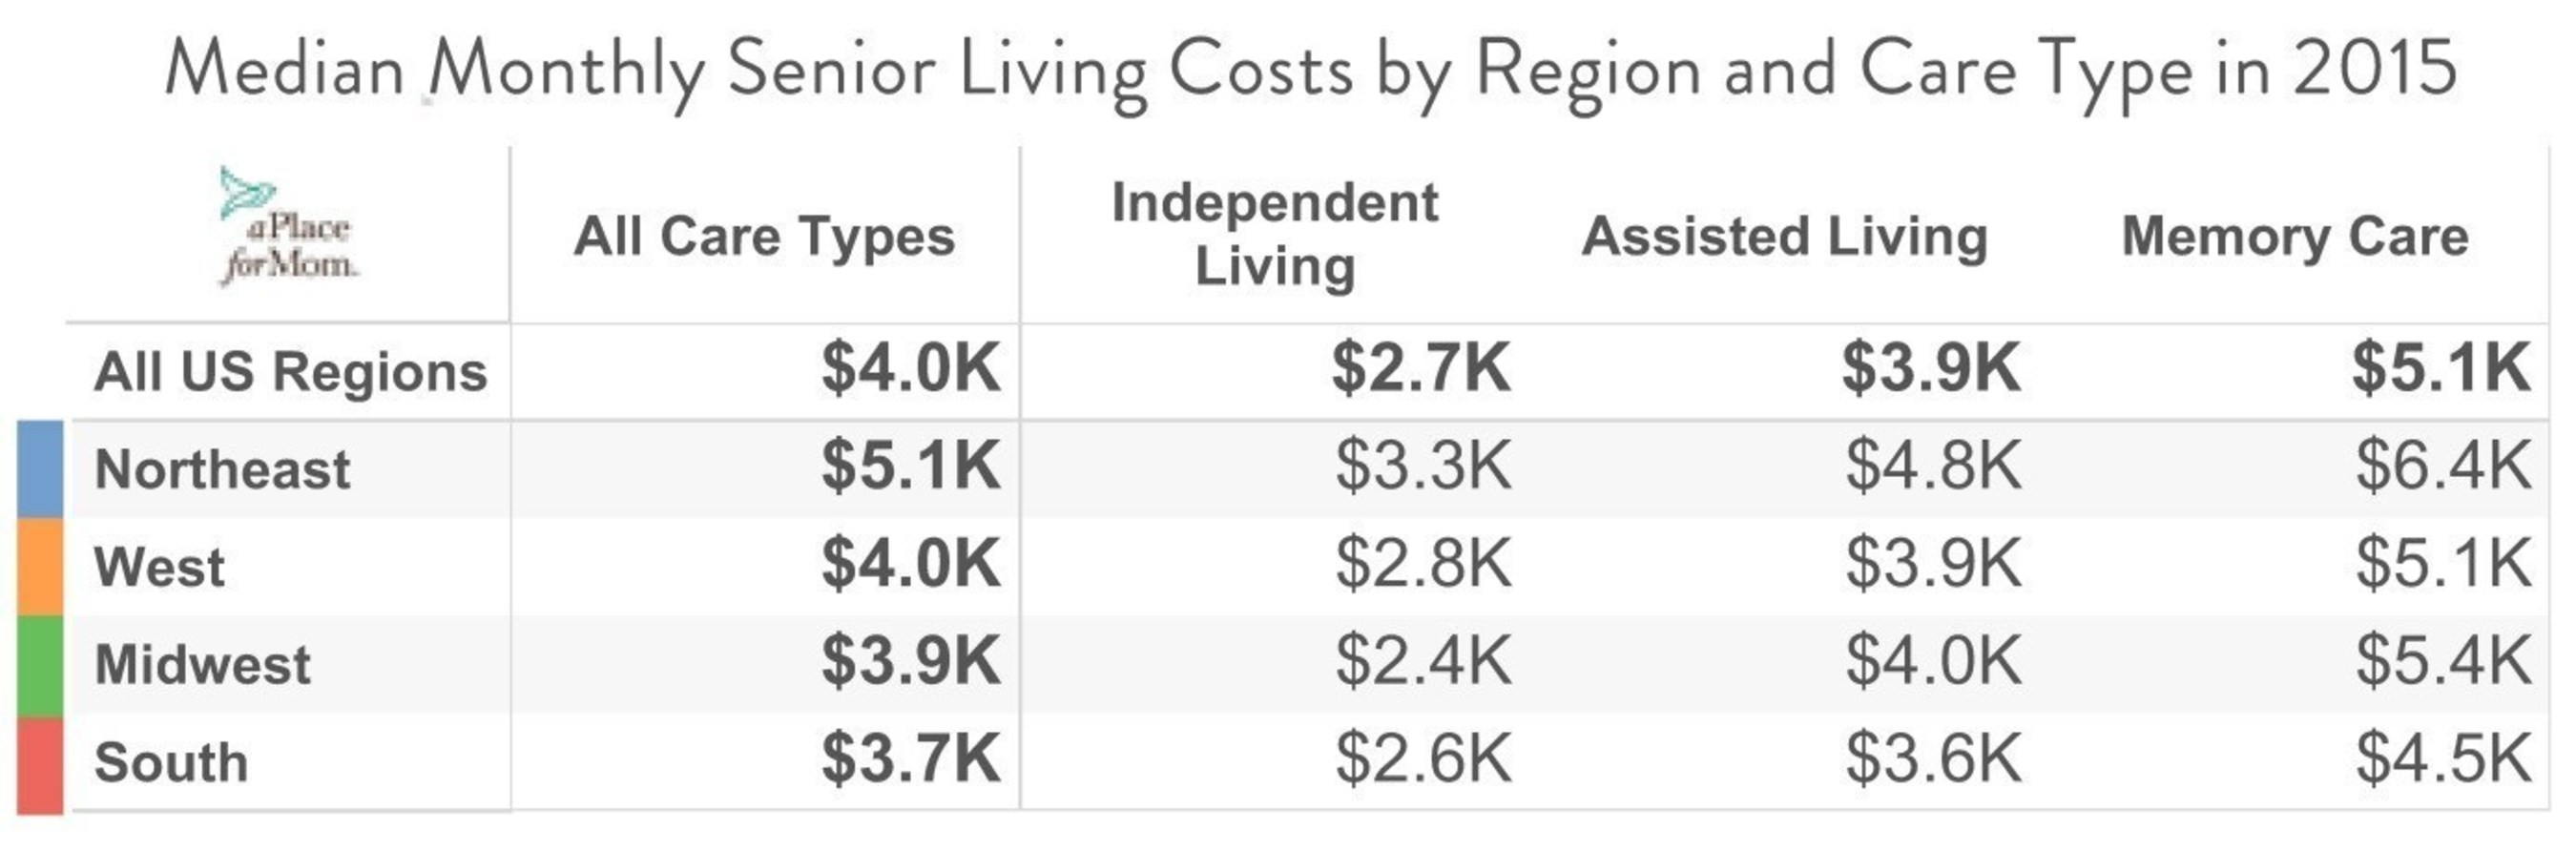 Families Paid $1,200+ More in 2015 for Senior Housing and